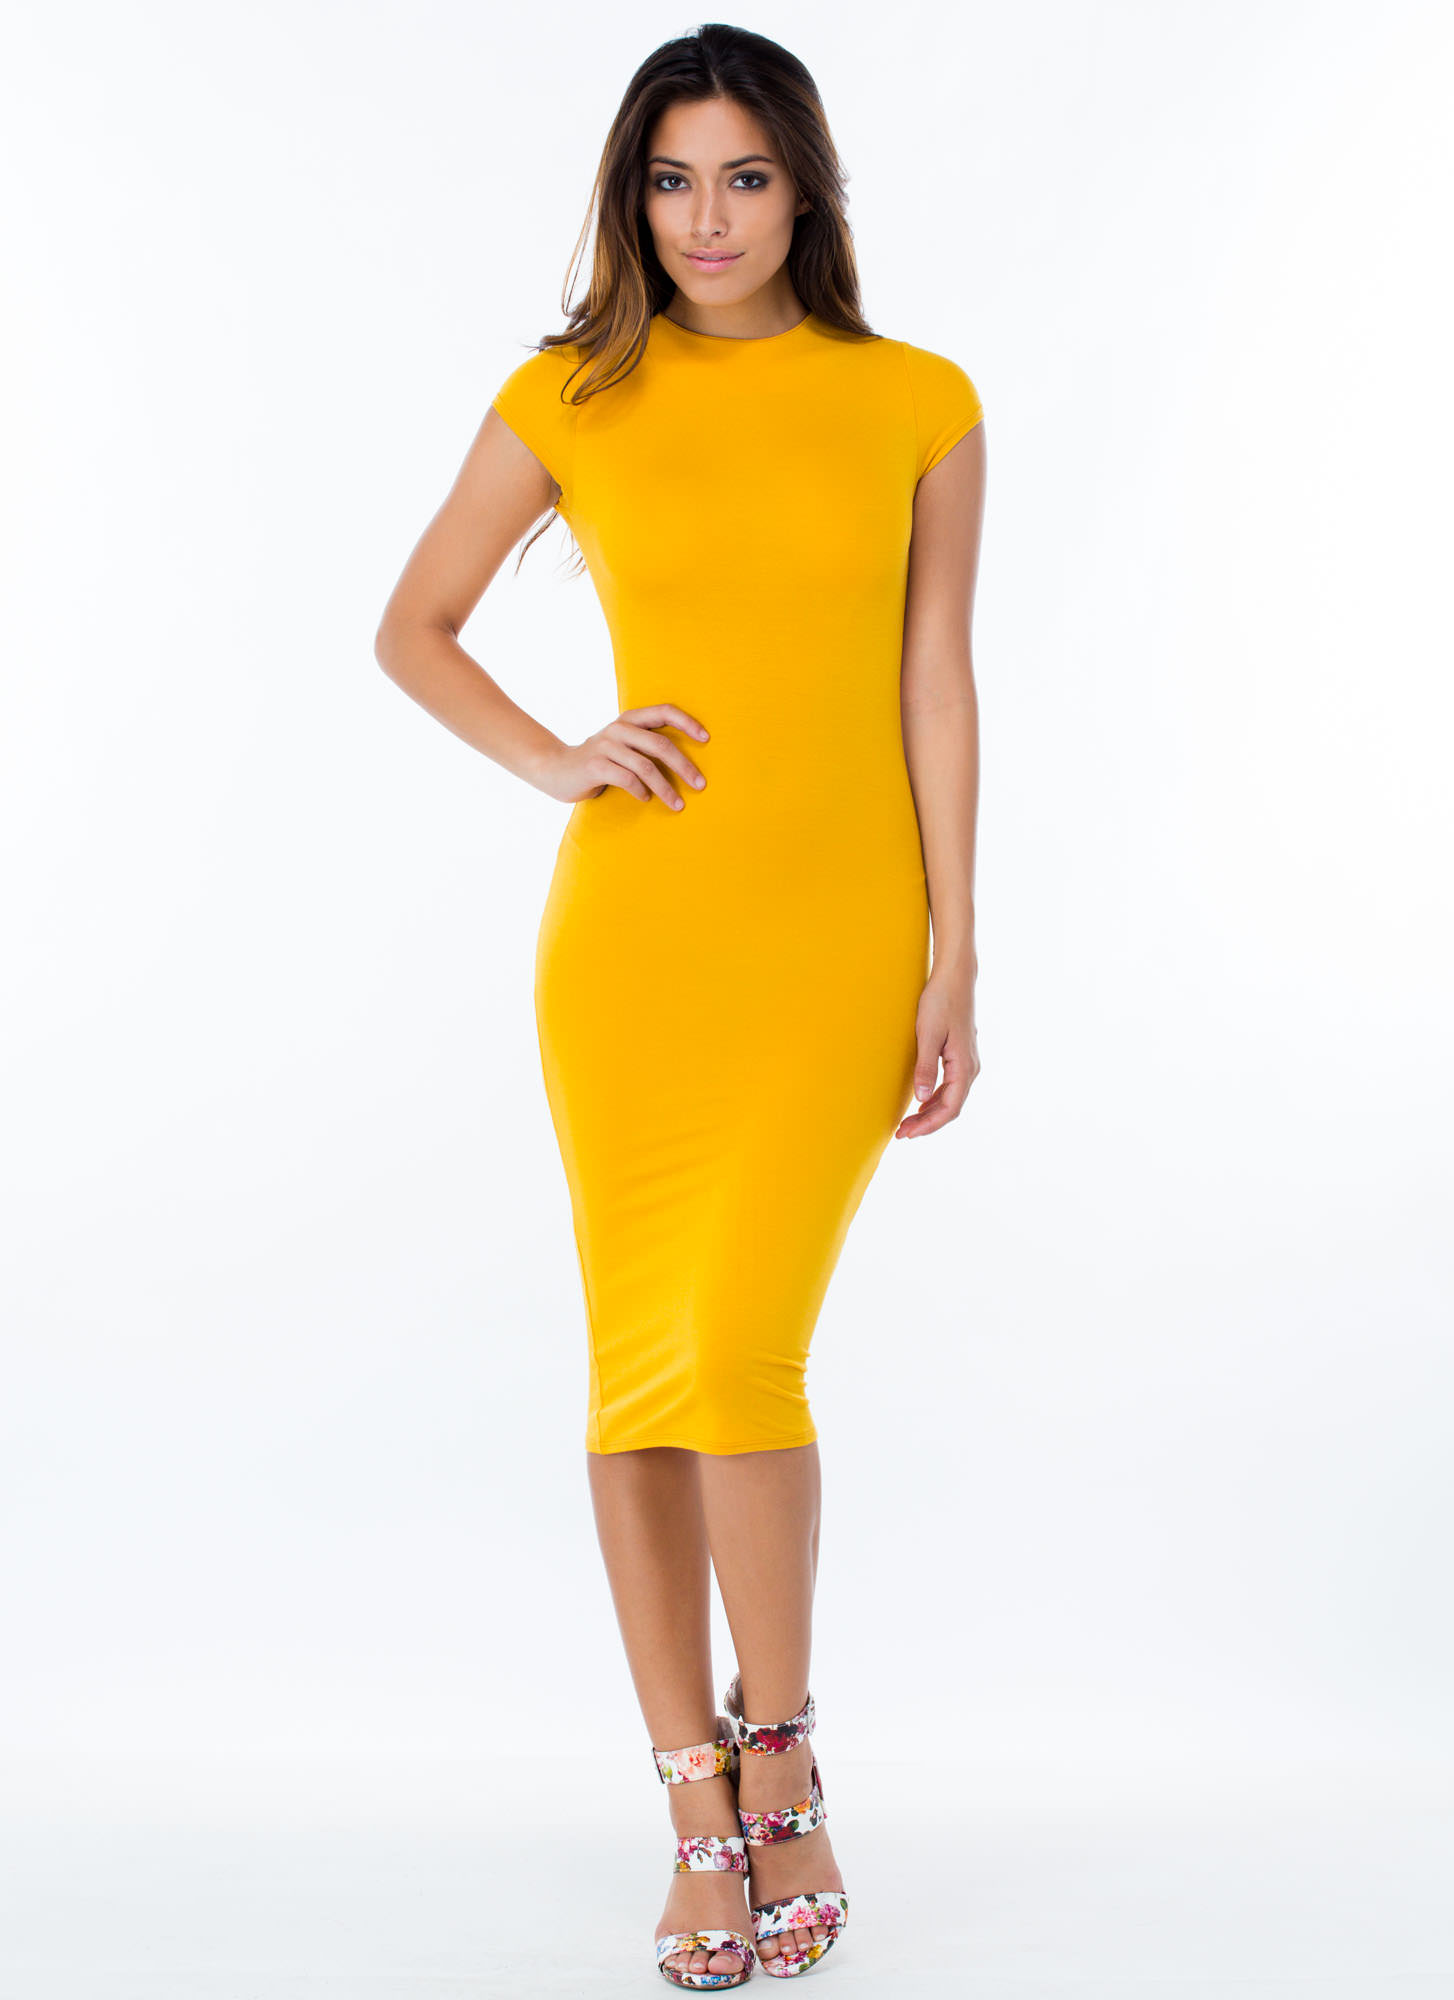 How To Master Mustard Color Dress & AccessoriesTrend – Lava360